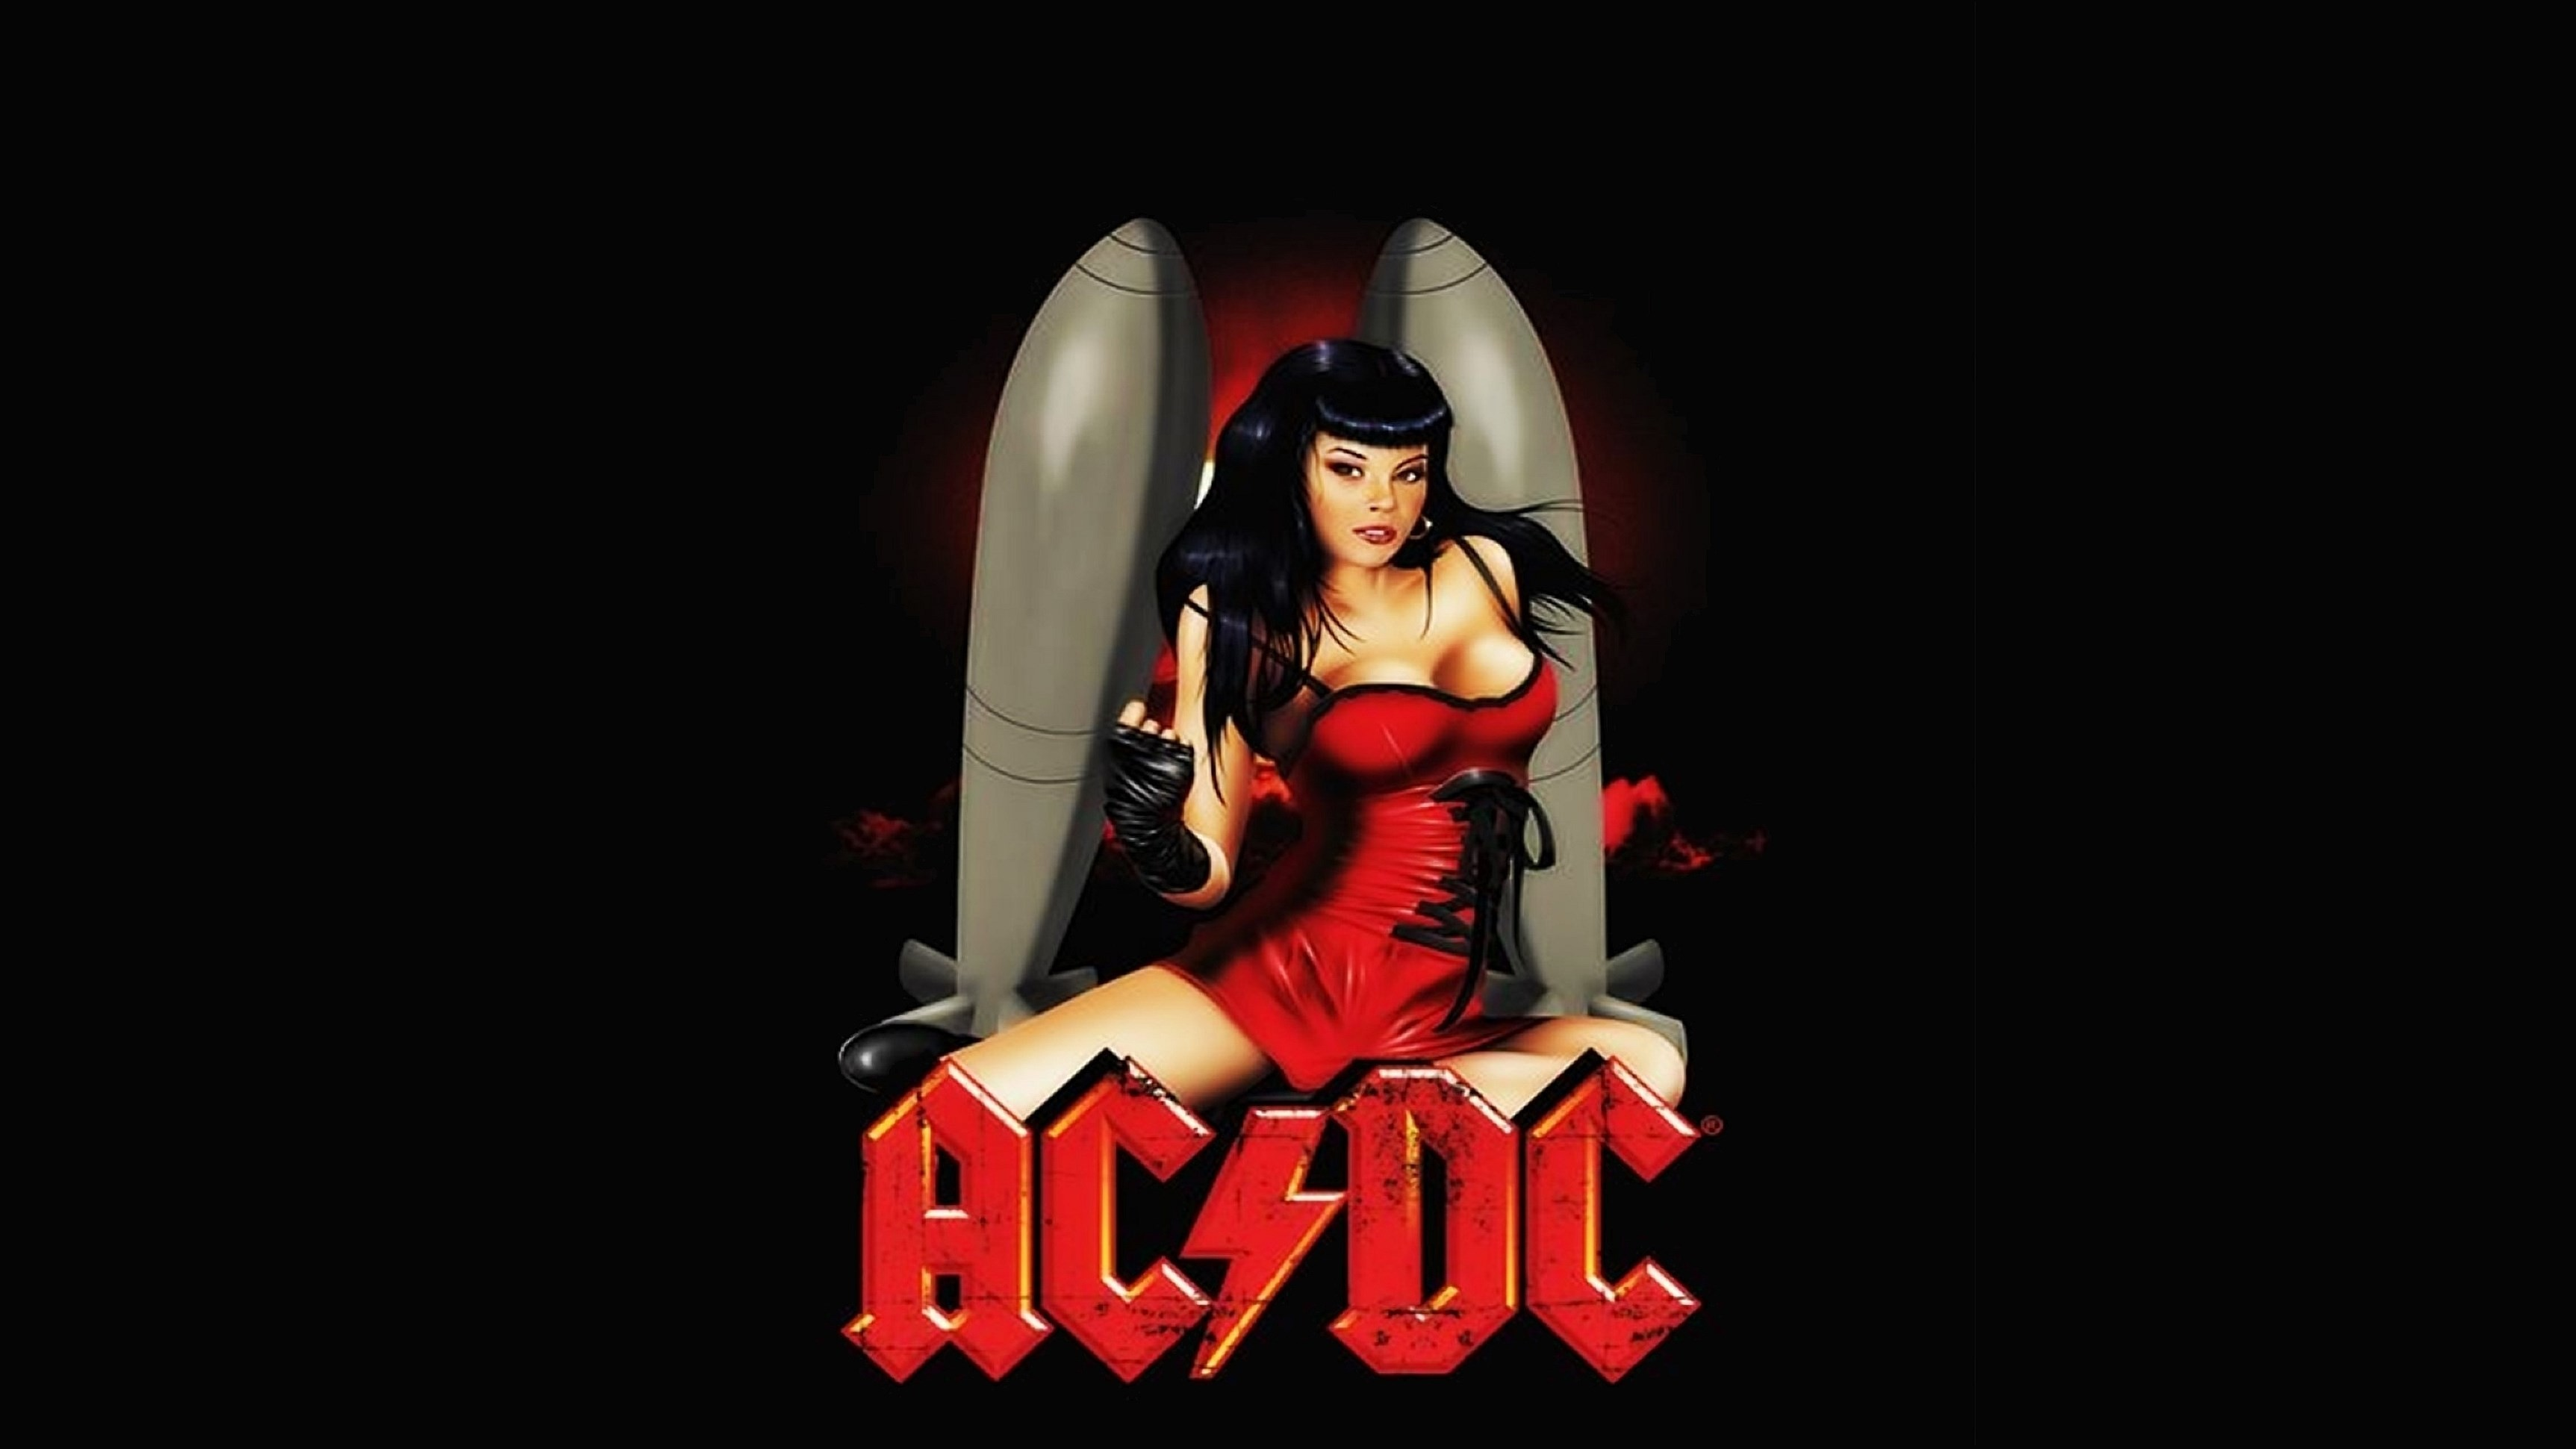 High Resolution Wallpaper acdc